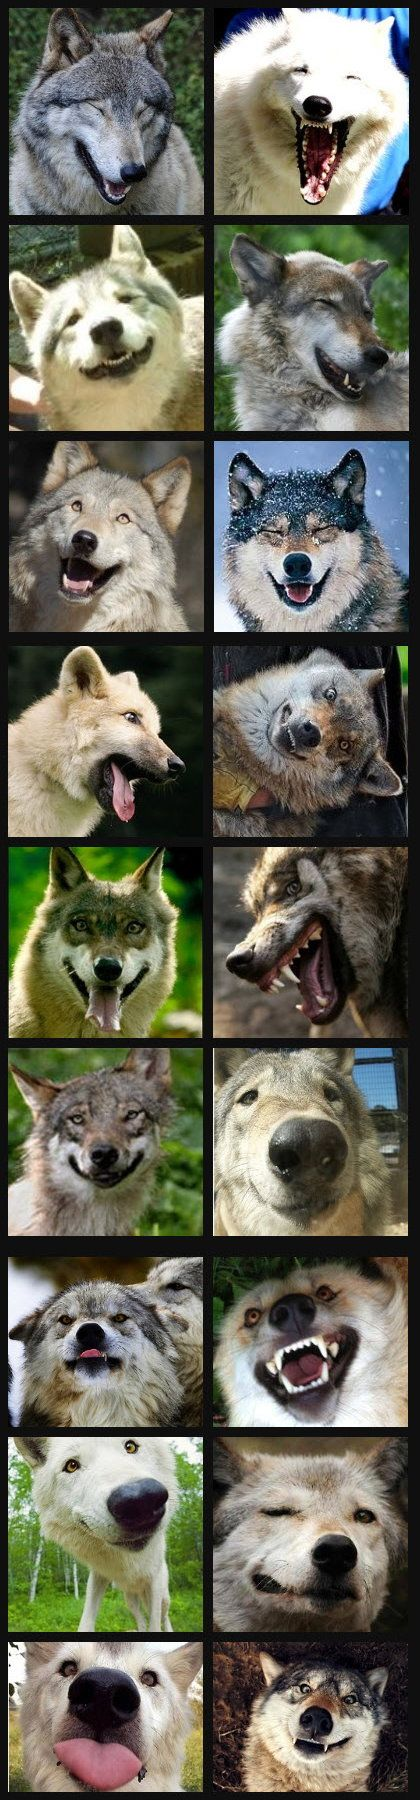 The many faces of wolves